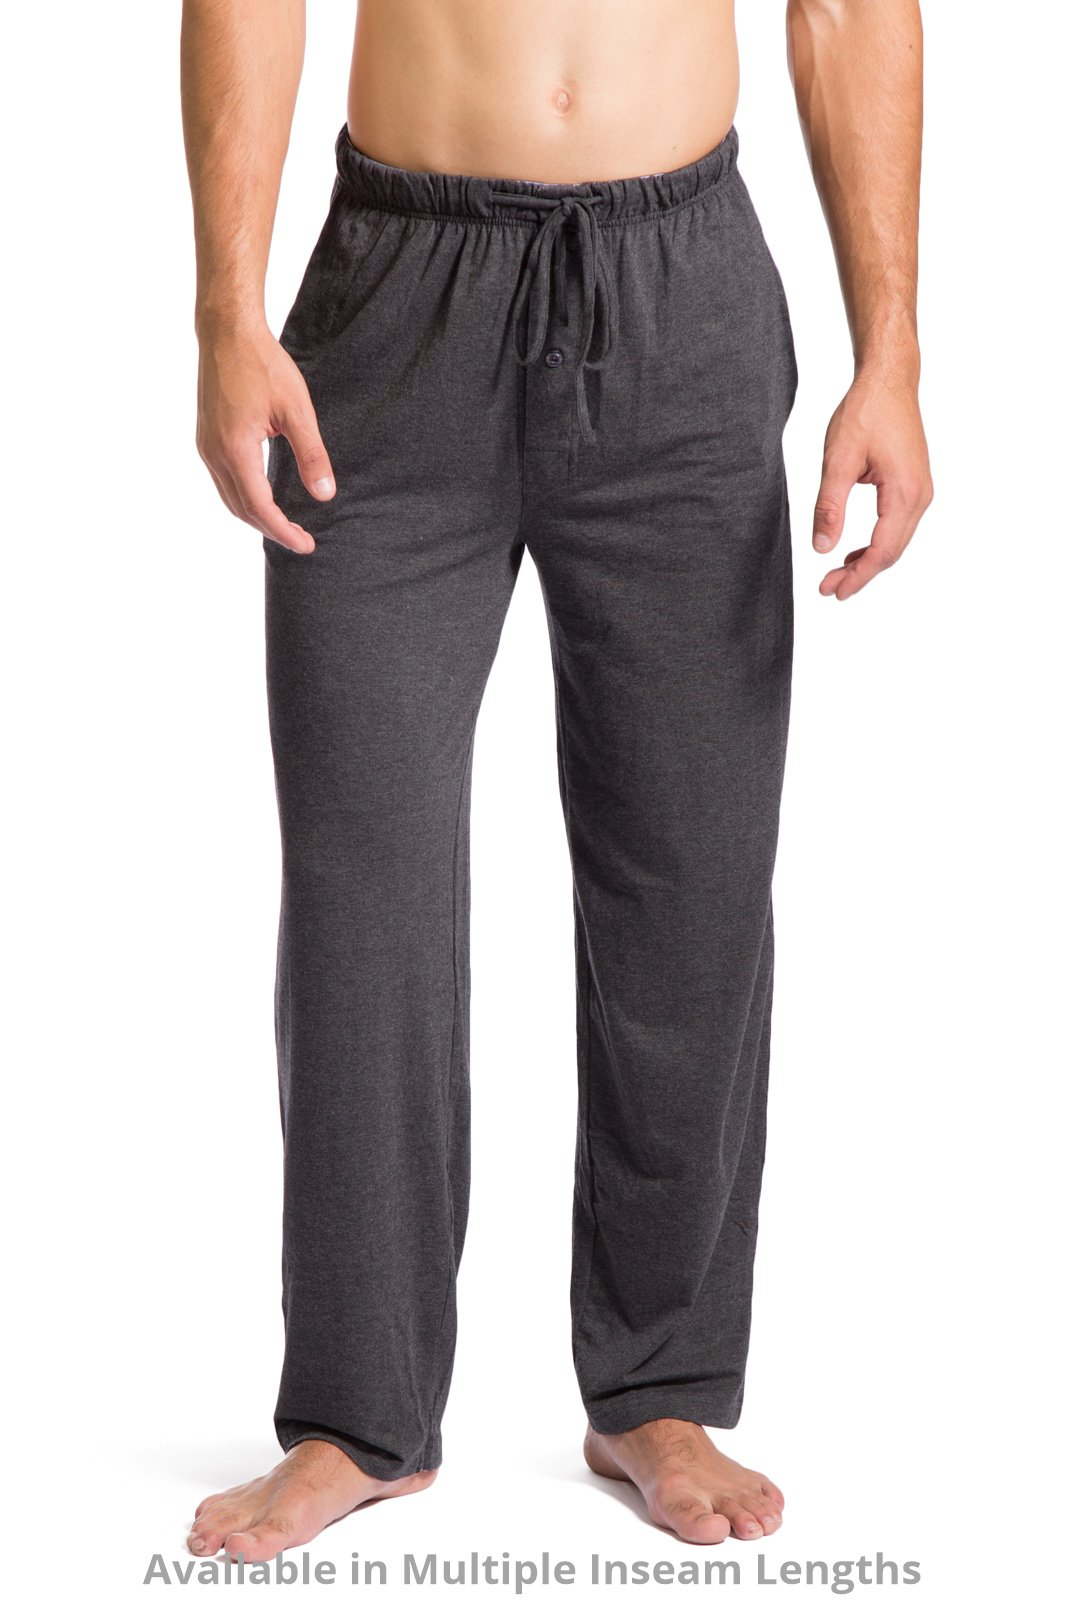 Fishers Finery Mens Ecofabric Jersey Pajama Pant Soft Comfortable HTHR Gry, M